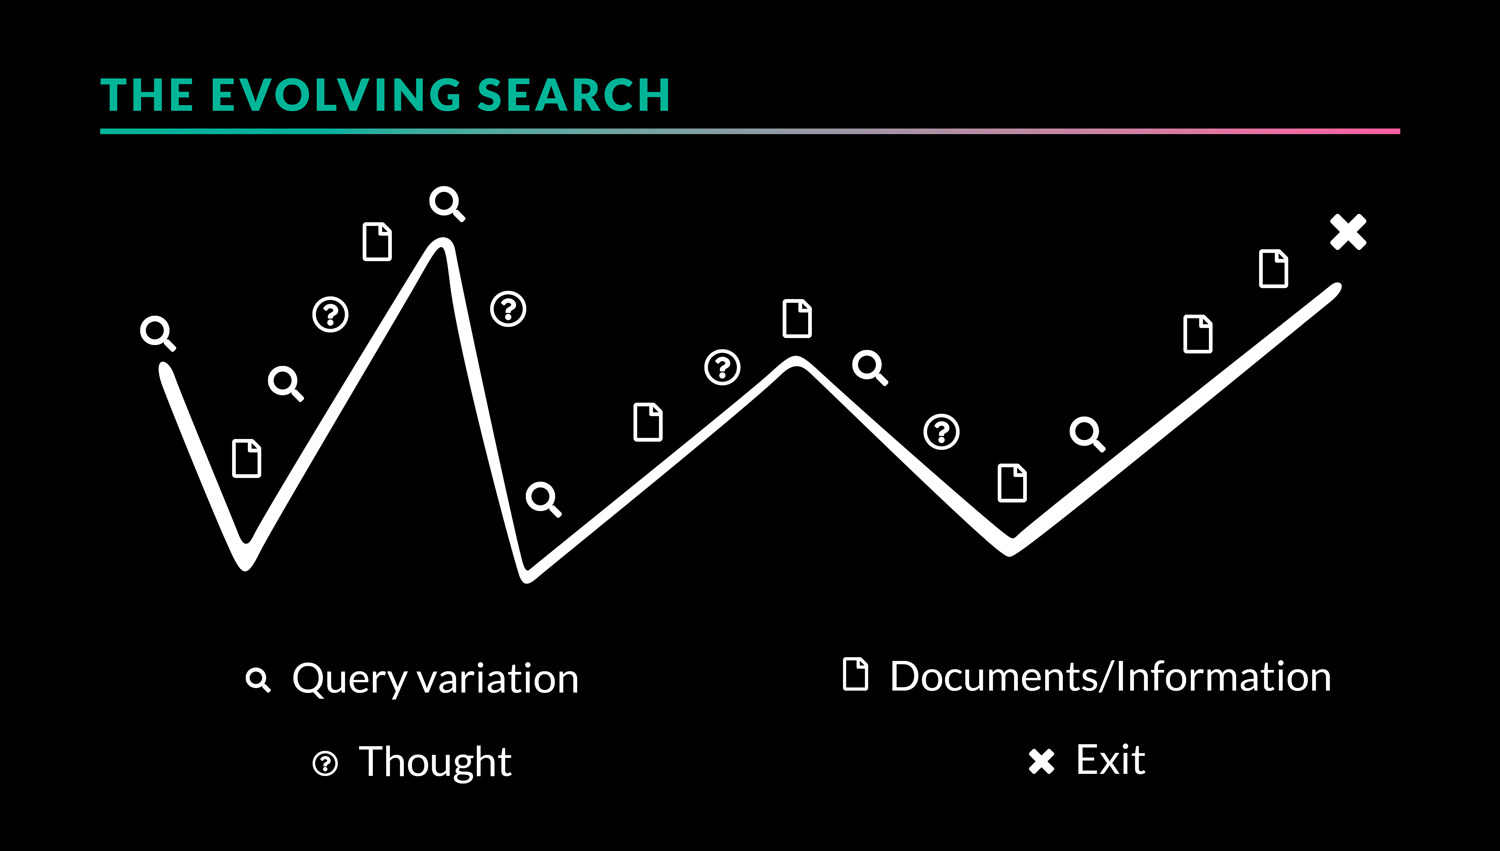 the evolving search